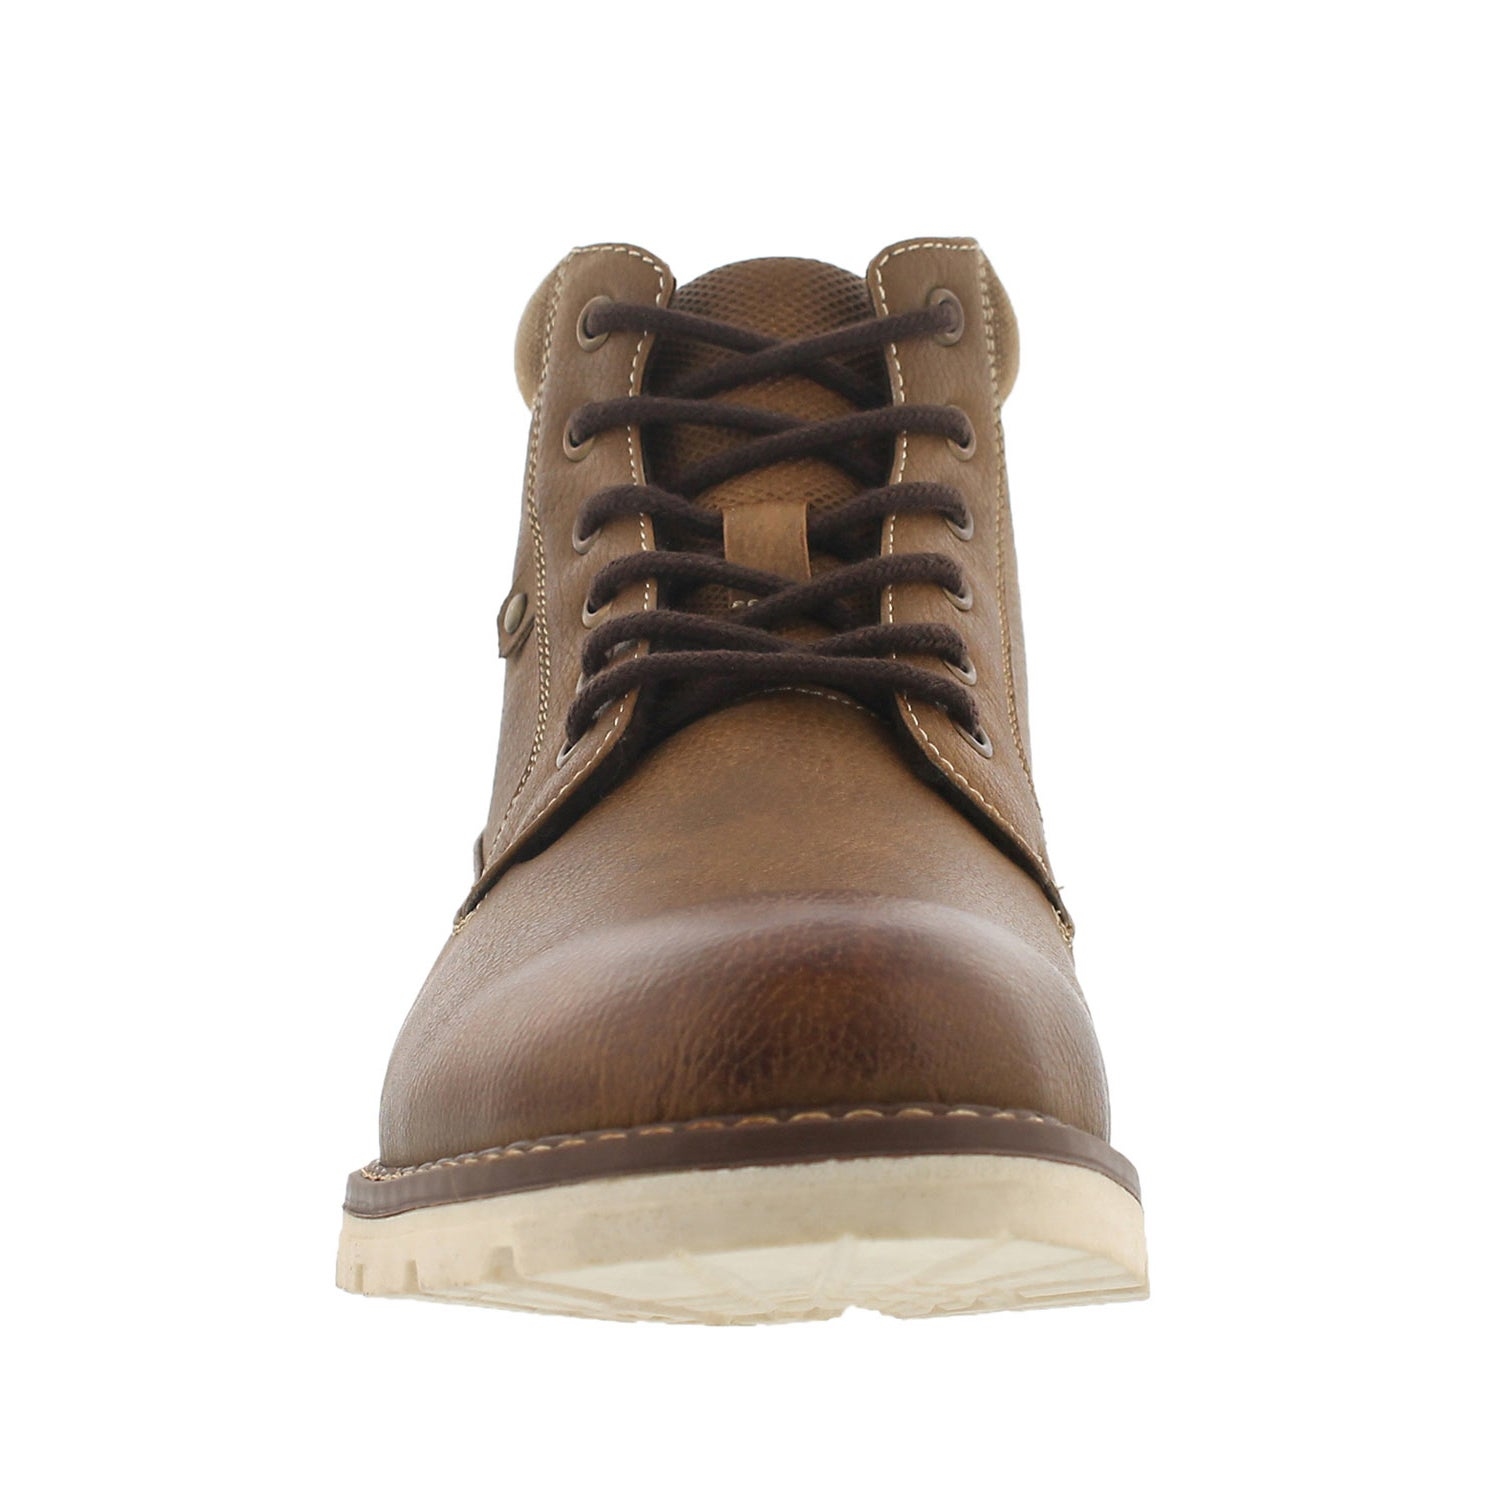 Mns Hallway cognac lace up ankle boot